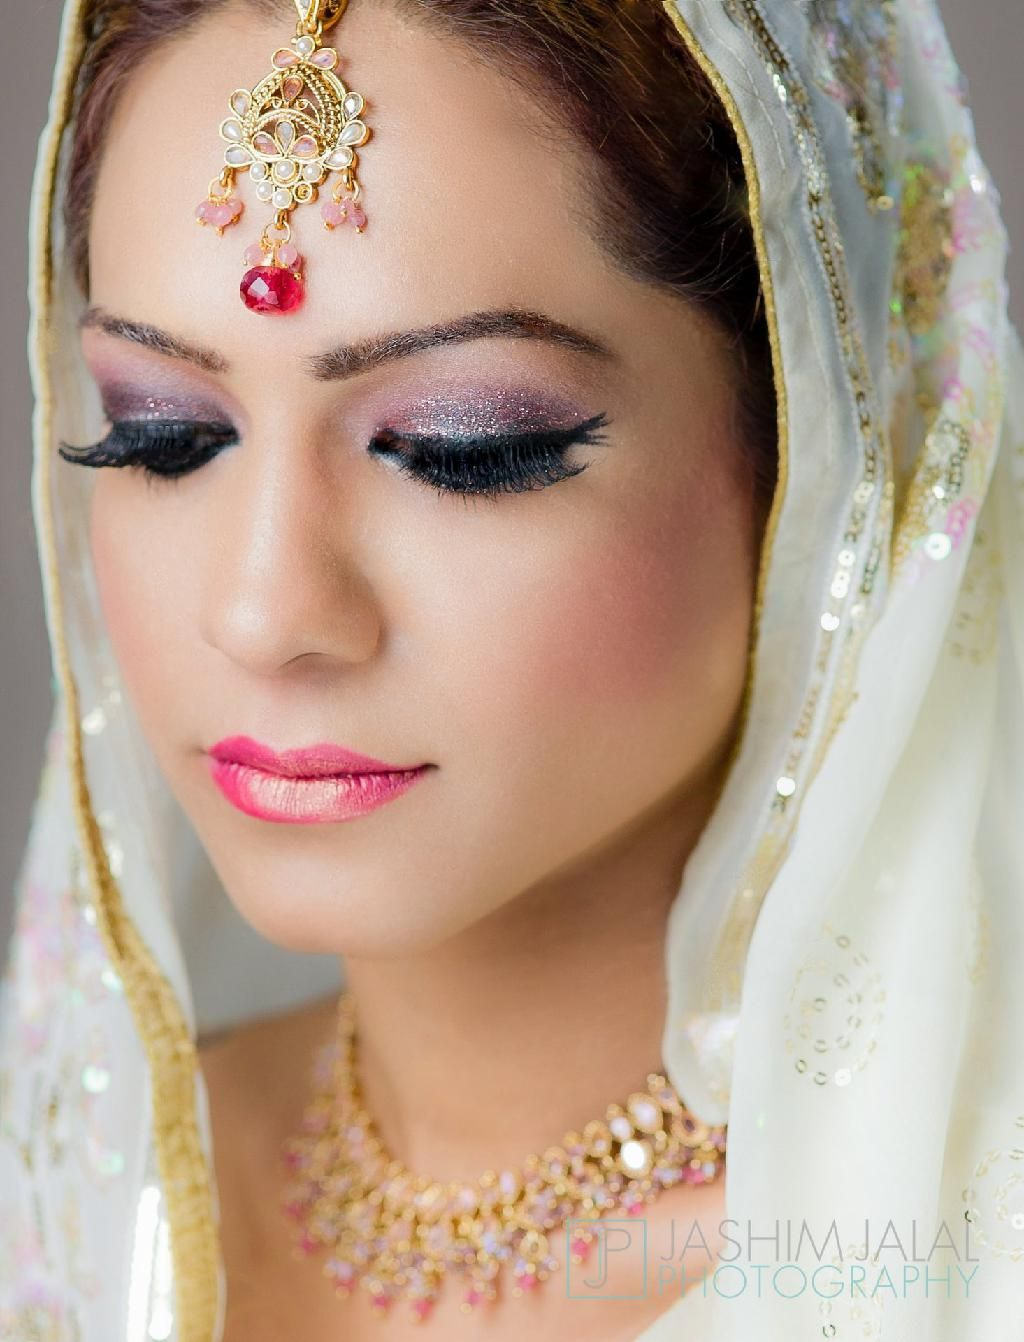 fatima aldoseri makeup artist | Now Serving Dallas / Fort Worth, Texas